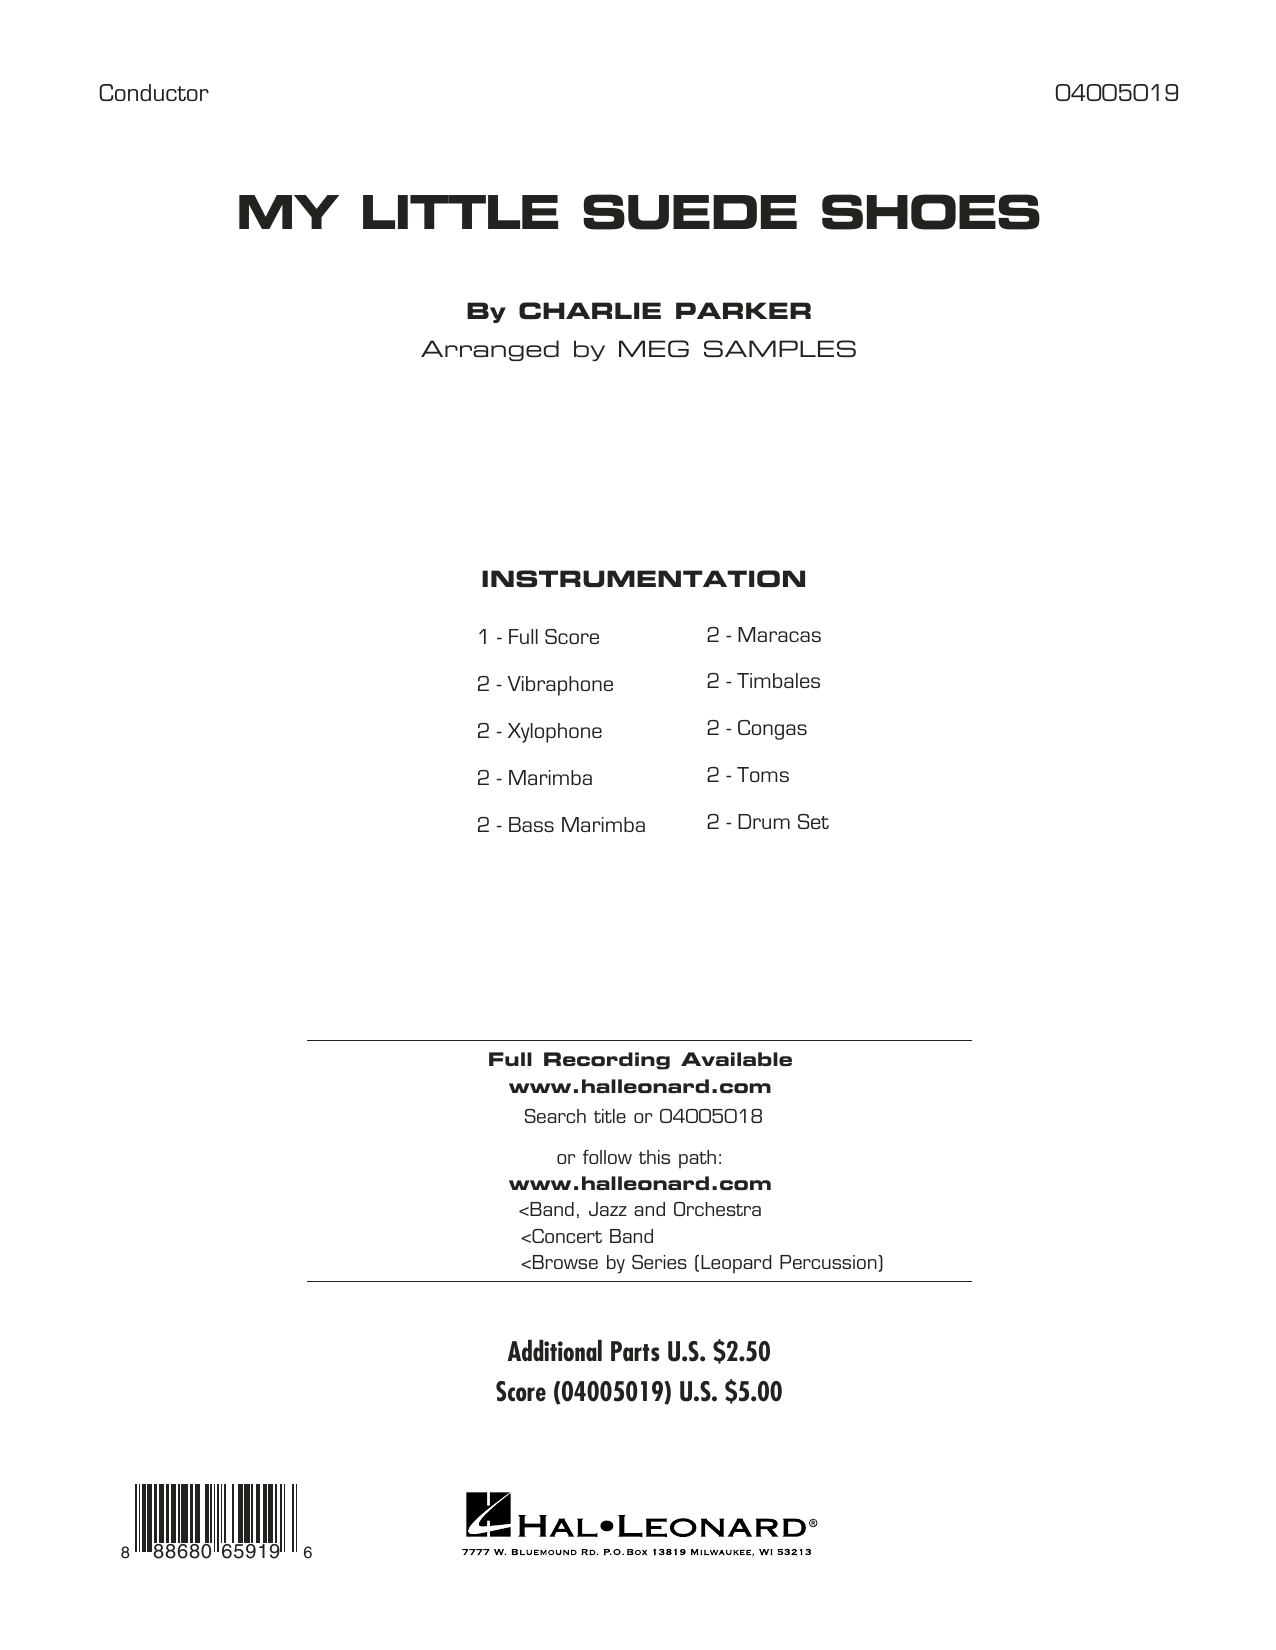 My Little Suede Shoes - Full Score